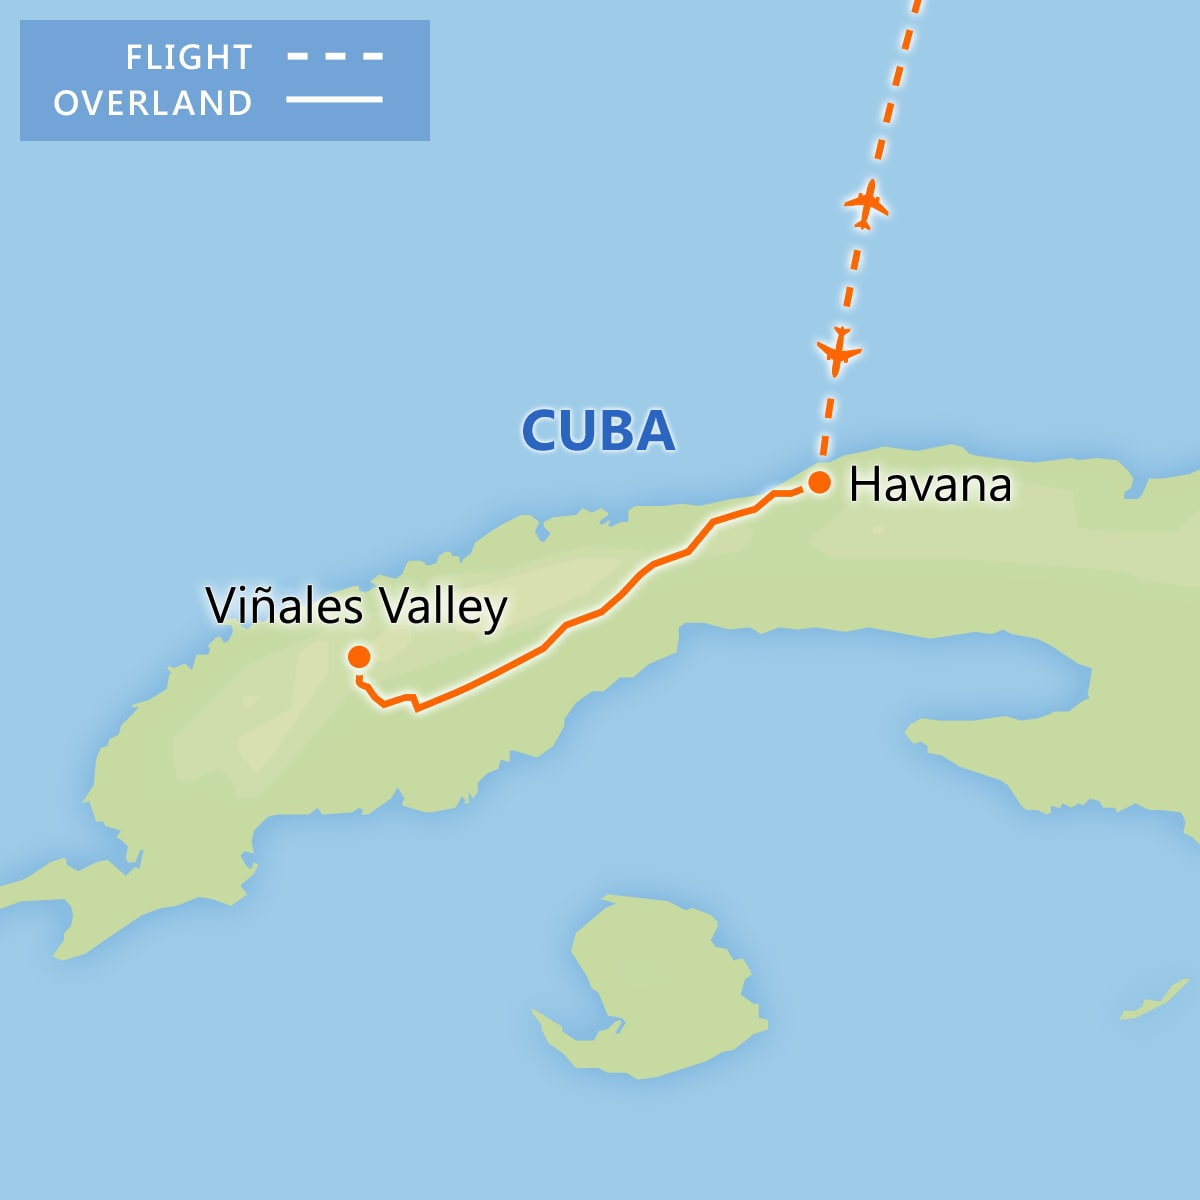 Authentic Havana & the Scenic Viñales Valley map